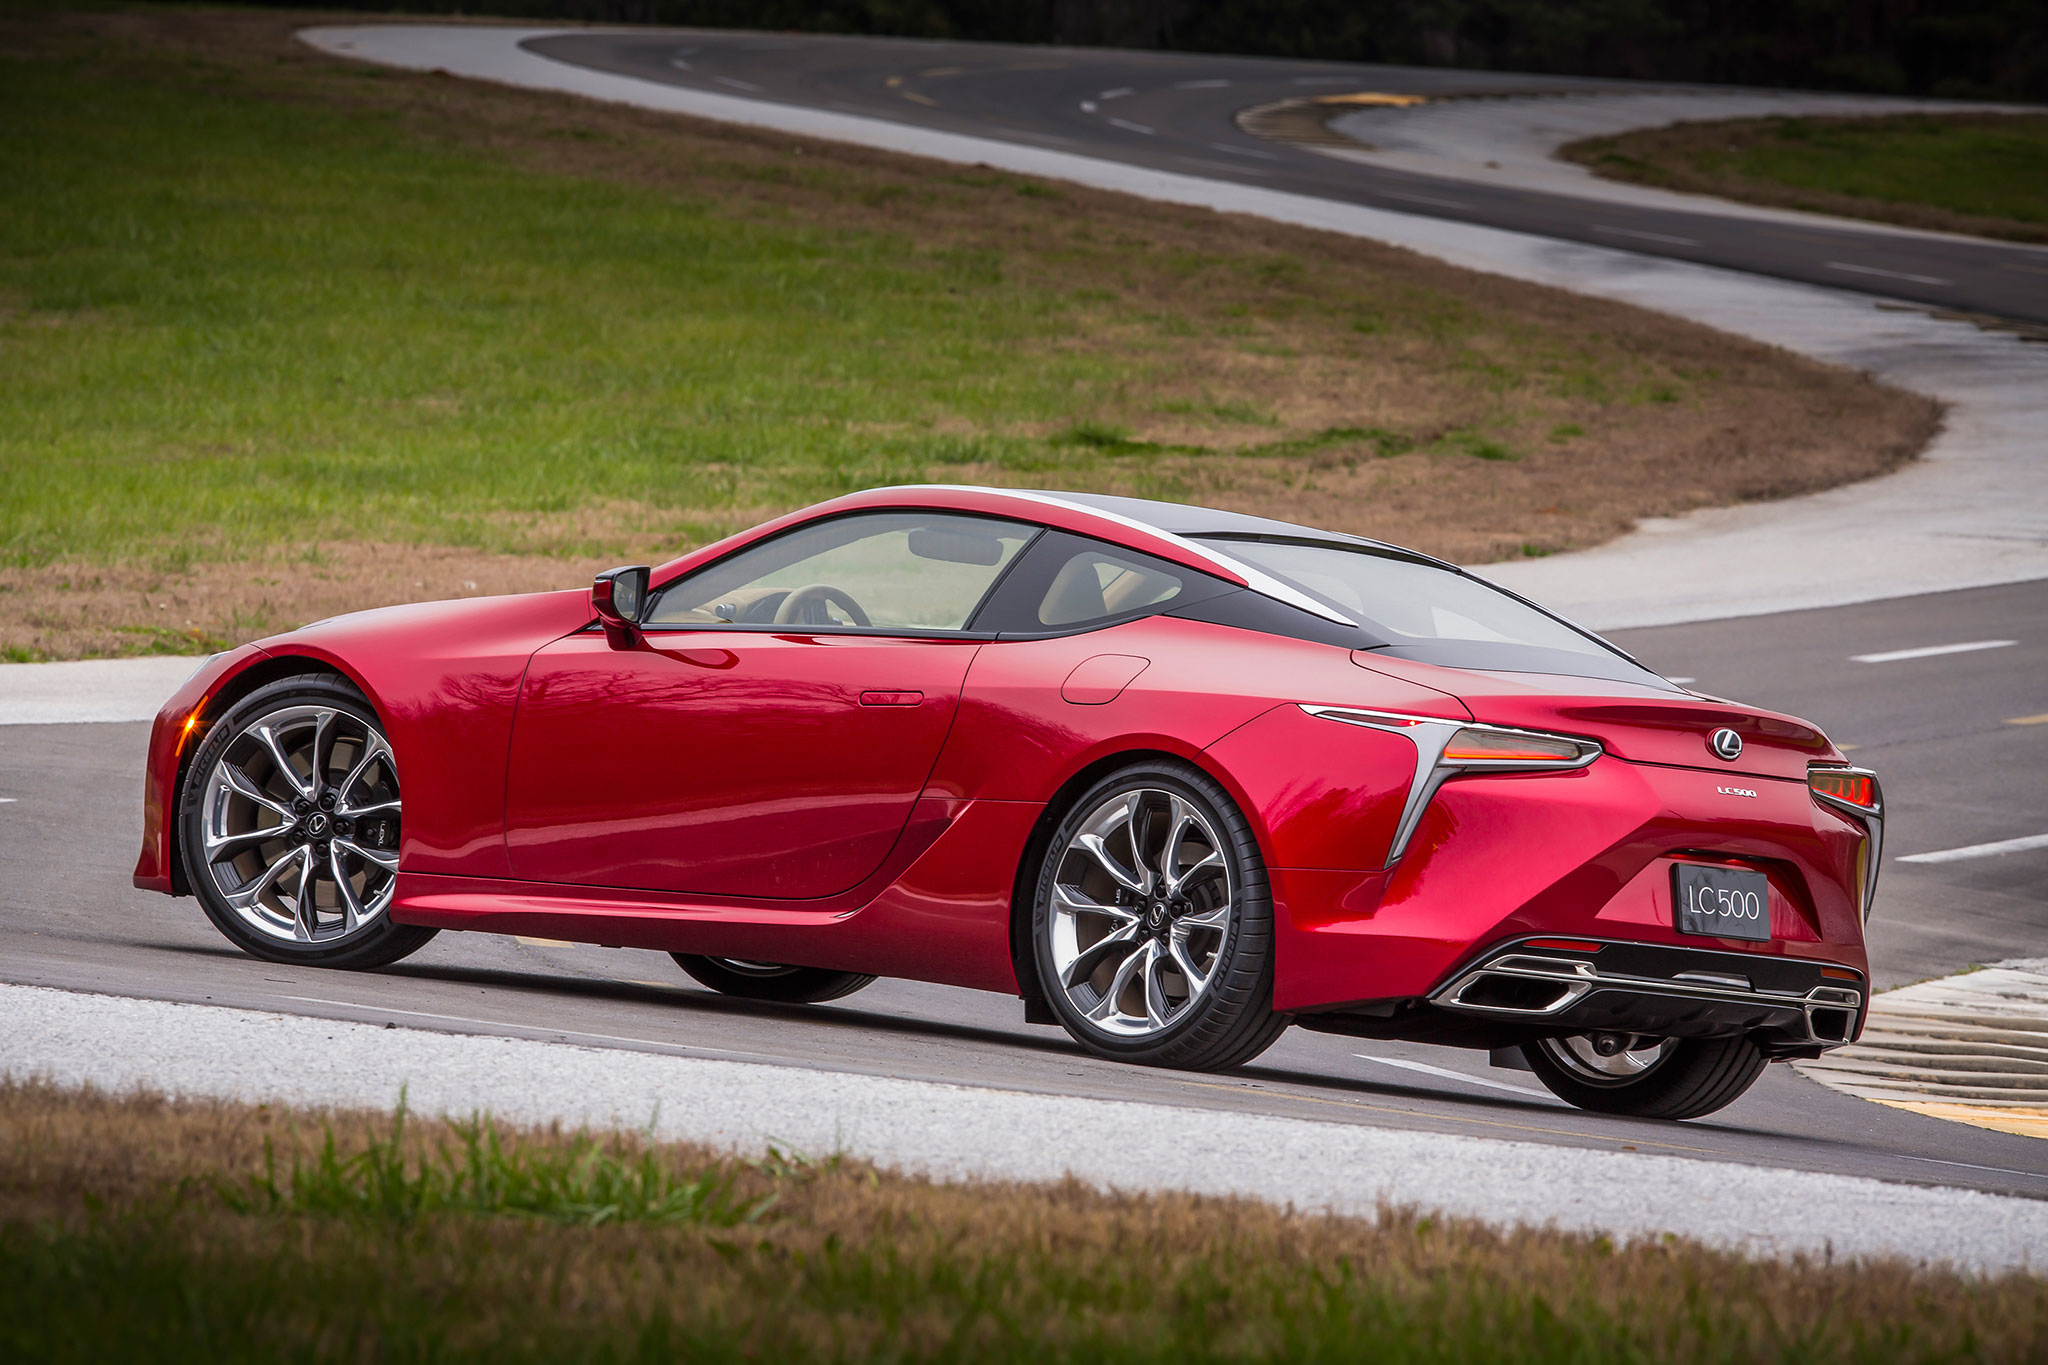 2018 lexus lc. Simple 2018 Show More For 2018 Lexus Lc